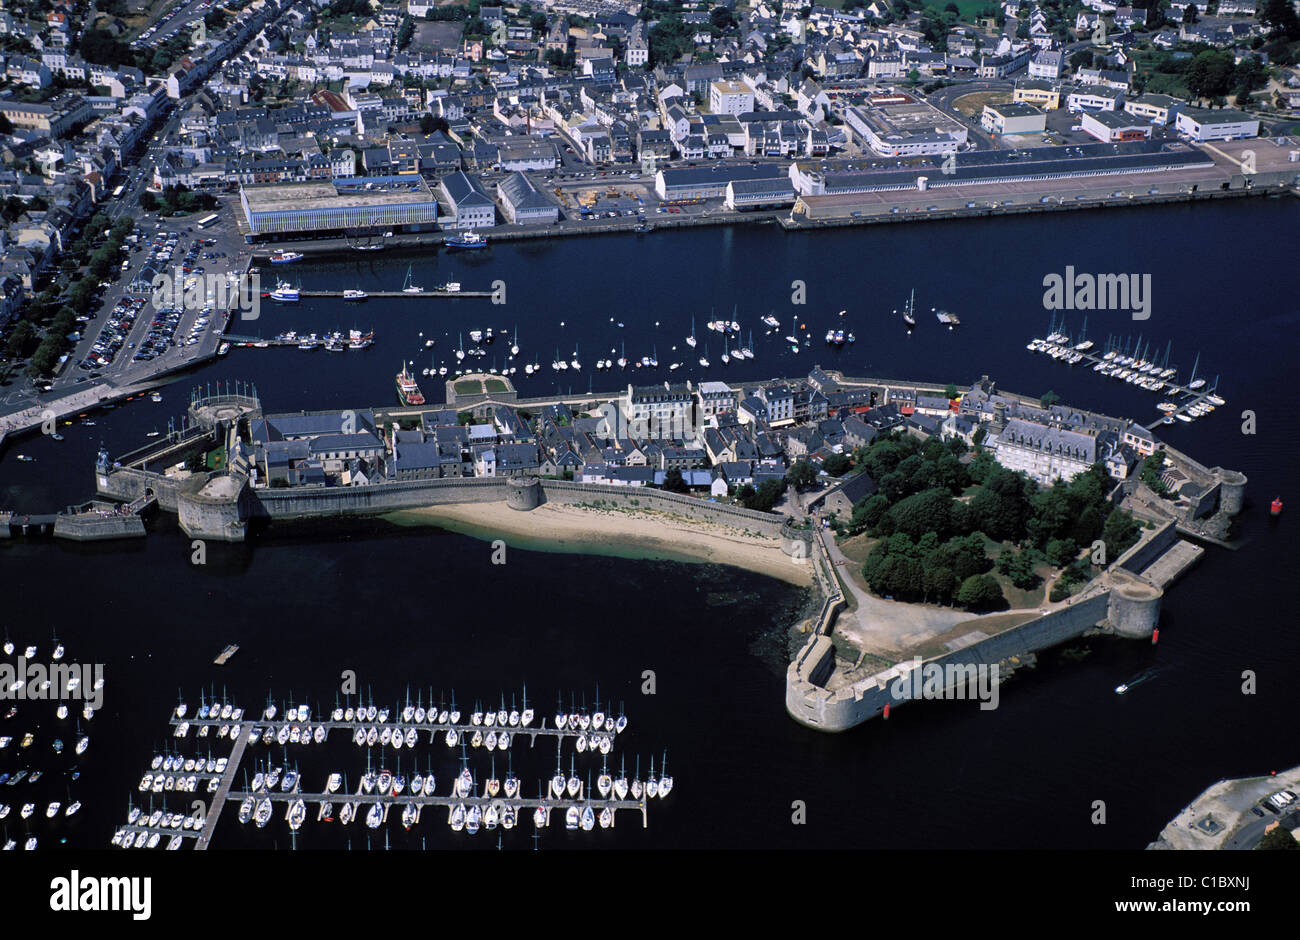 France, Finistere, Concarneau, the old enclosed town (aerial view) - Stock Image